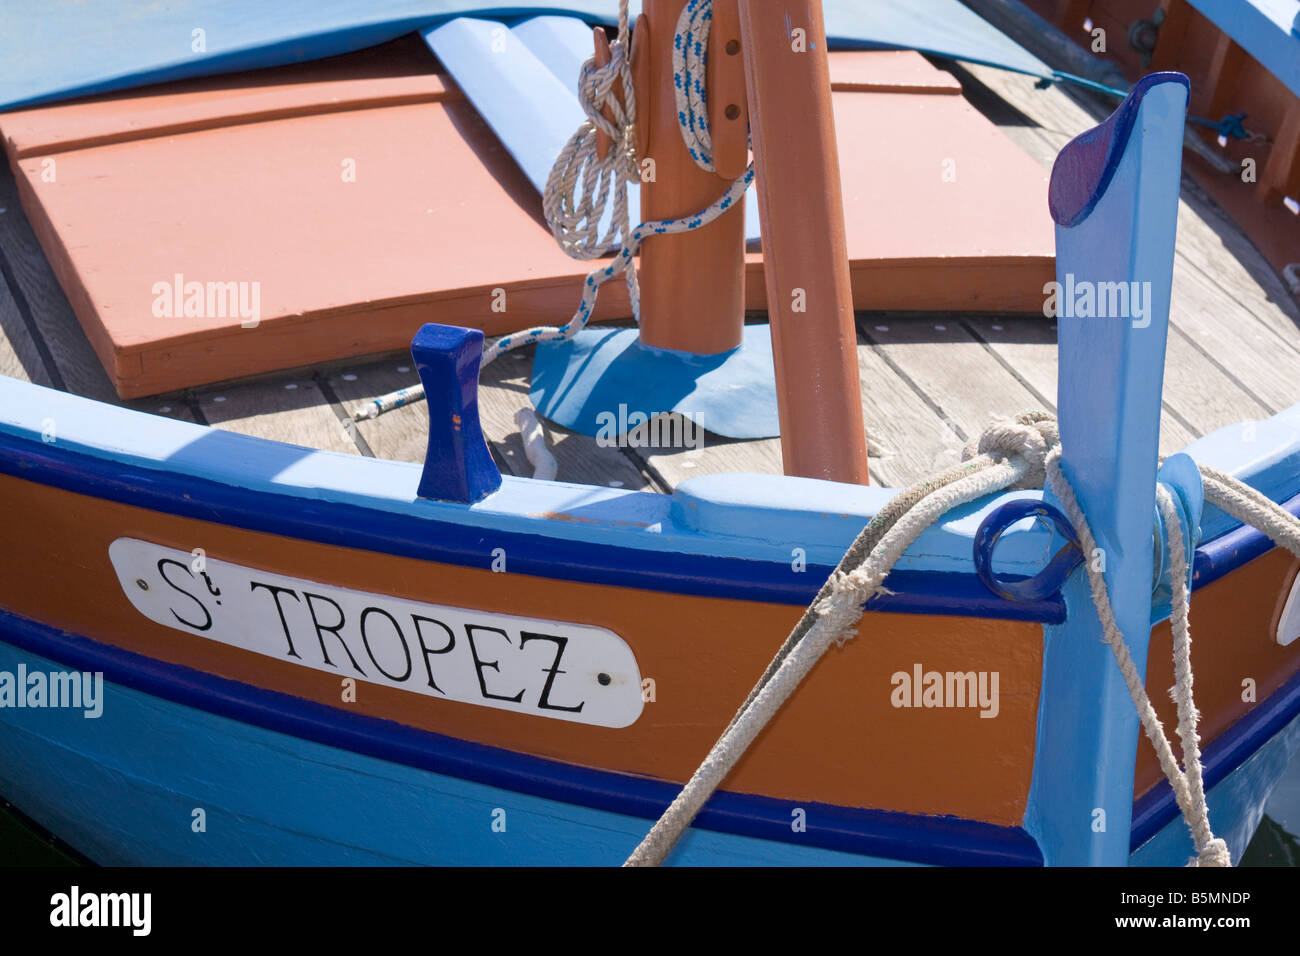 """A boat named """"St. Tropez"""" is situated in the port of Saint-Tropez at the Cote d'Azur / Provence / Southern France Stock Photo"""